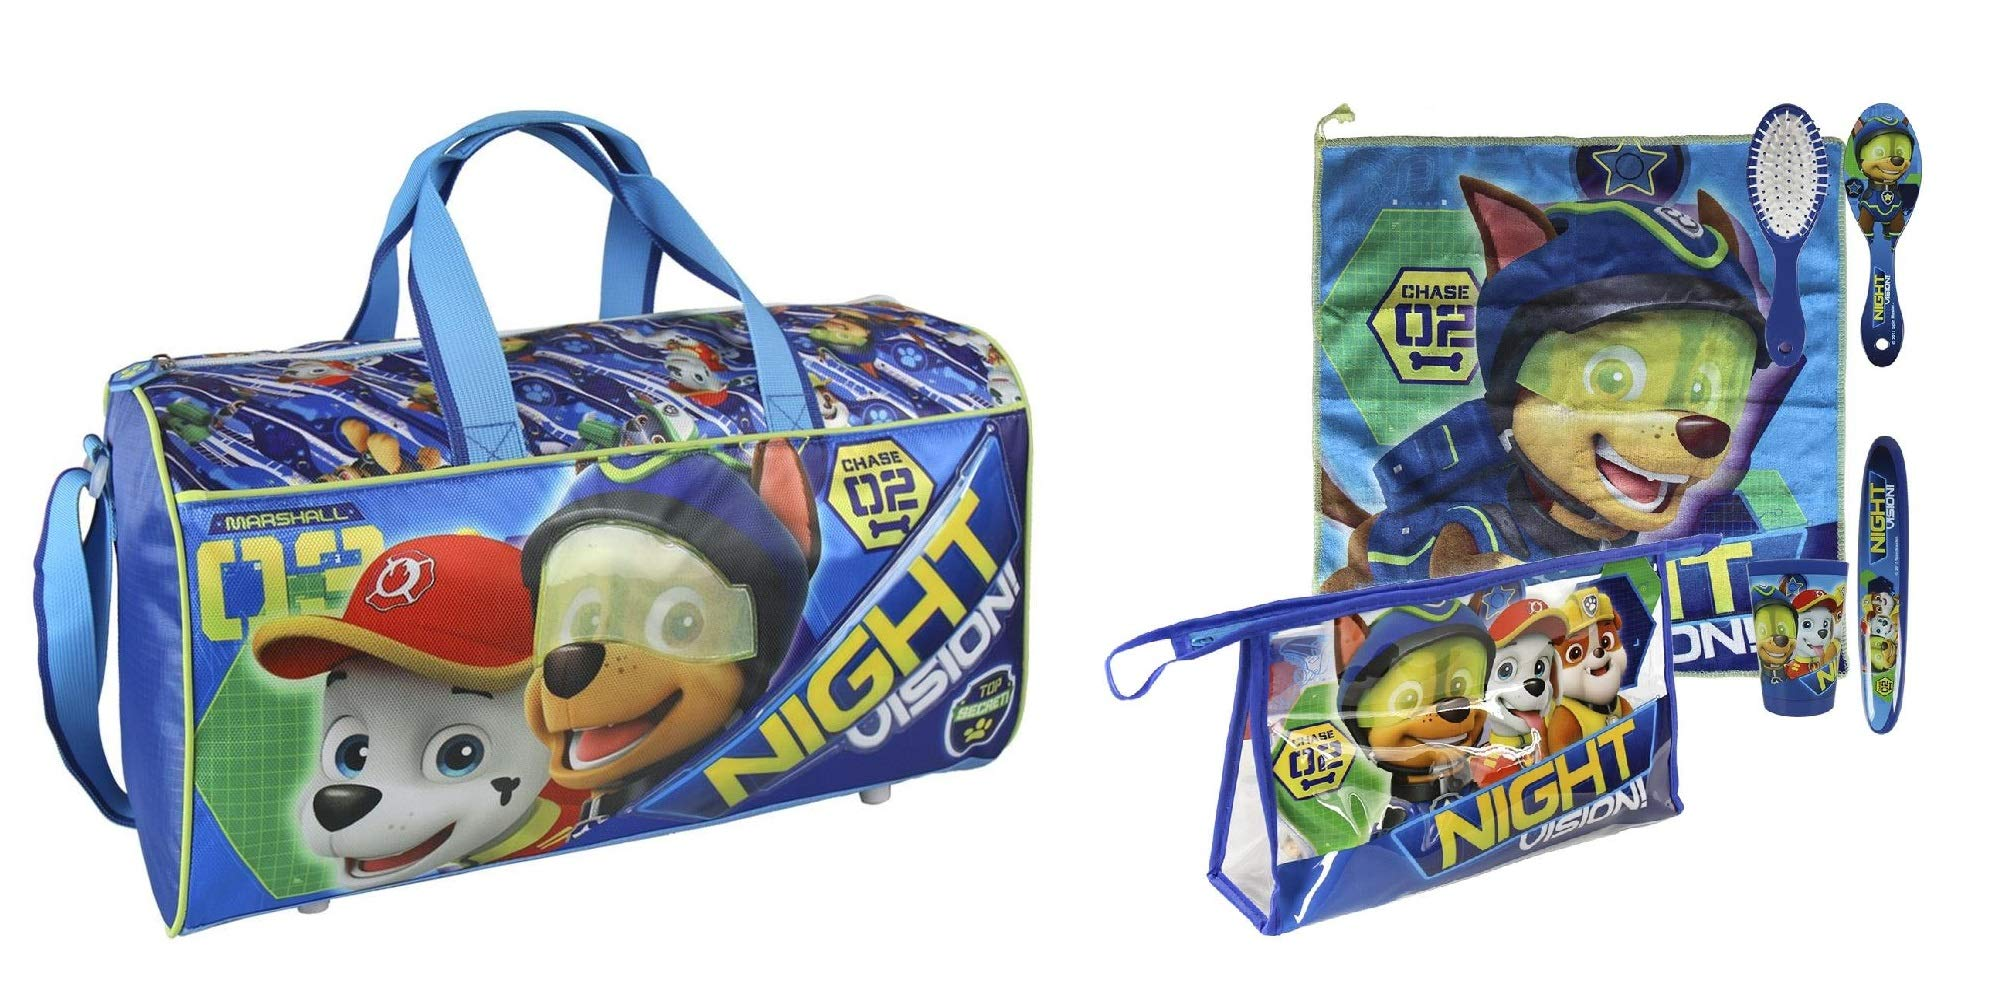 Paw Patrol Overnight Bag with Wash Bag and Accessories